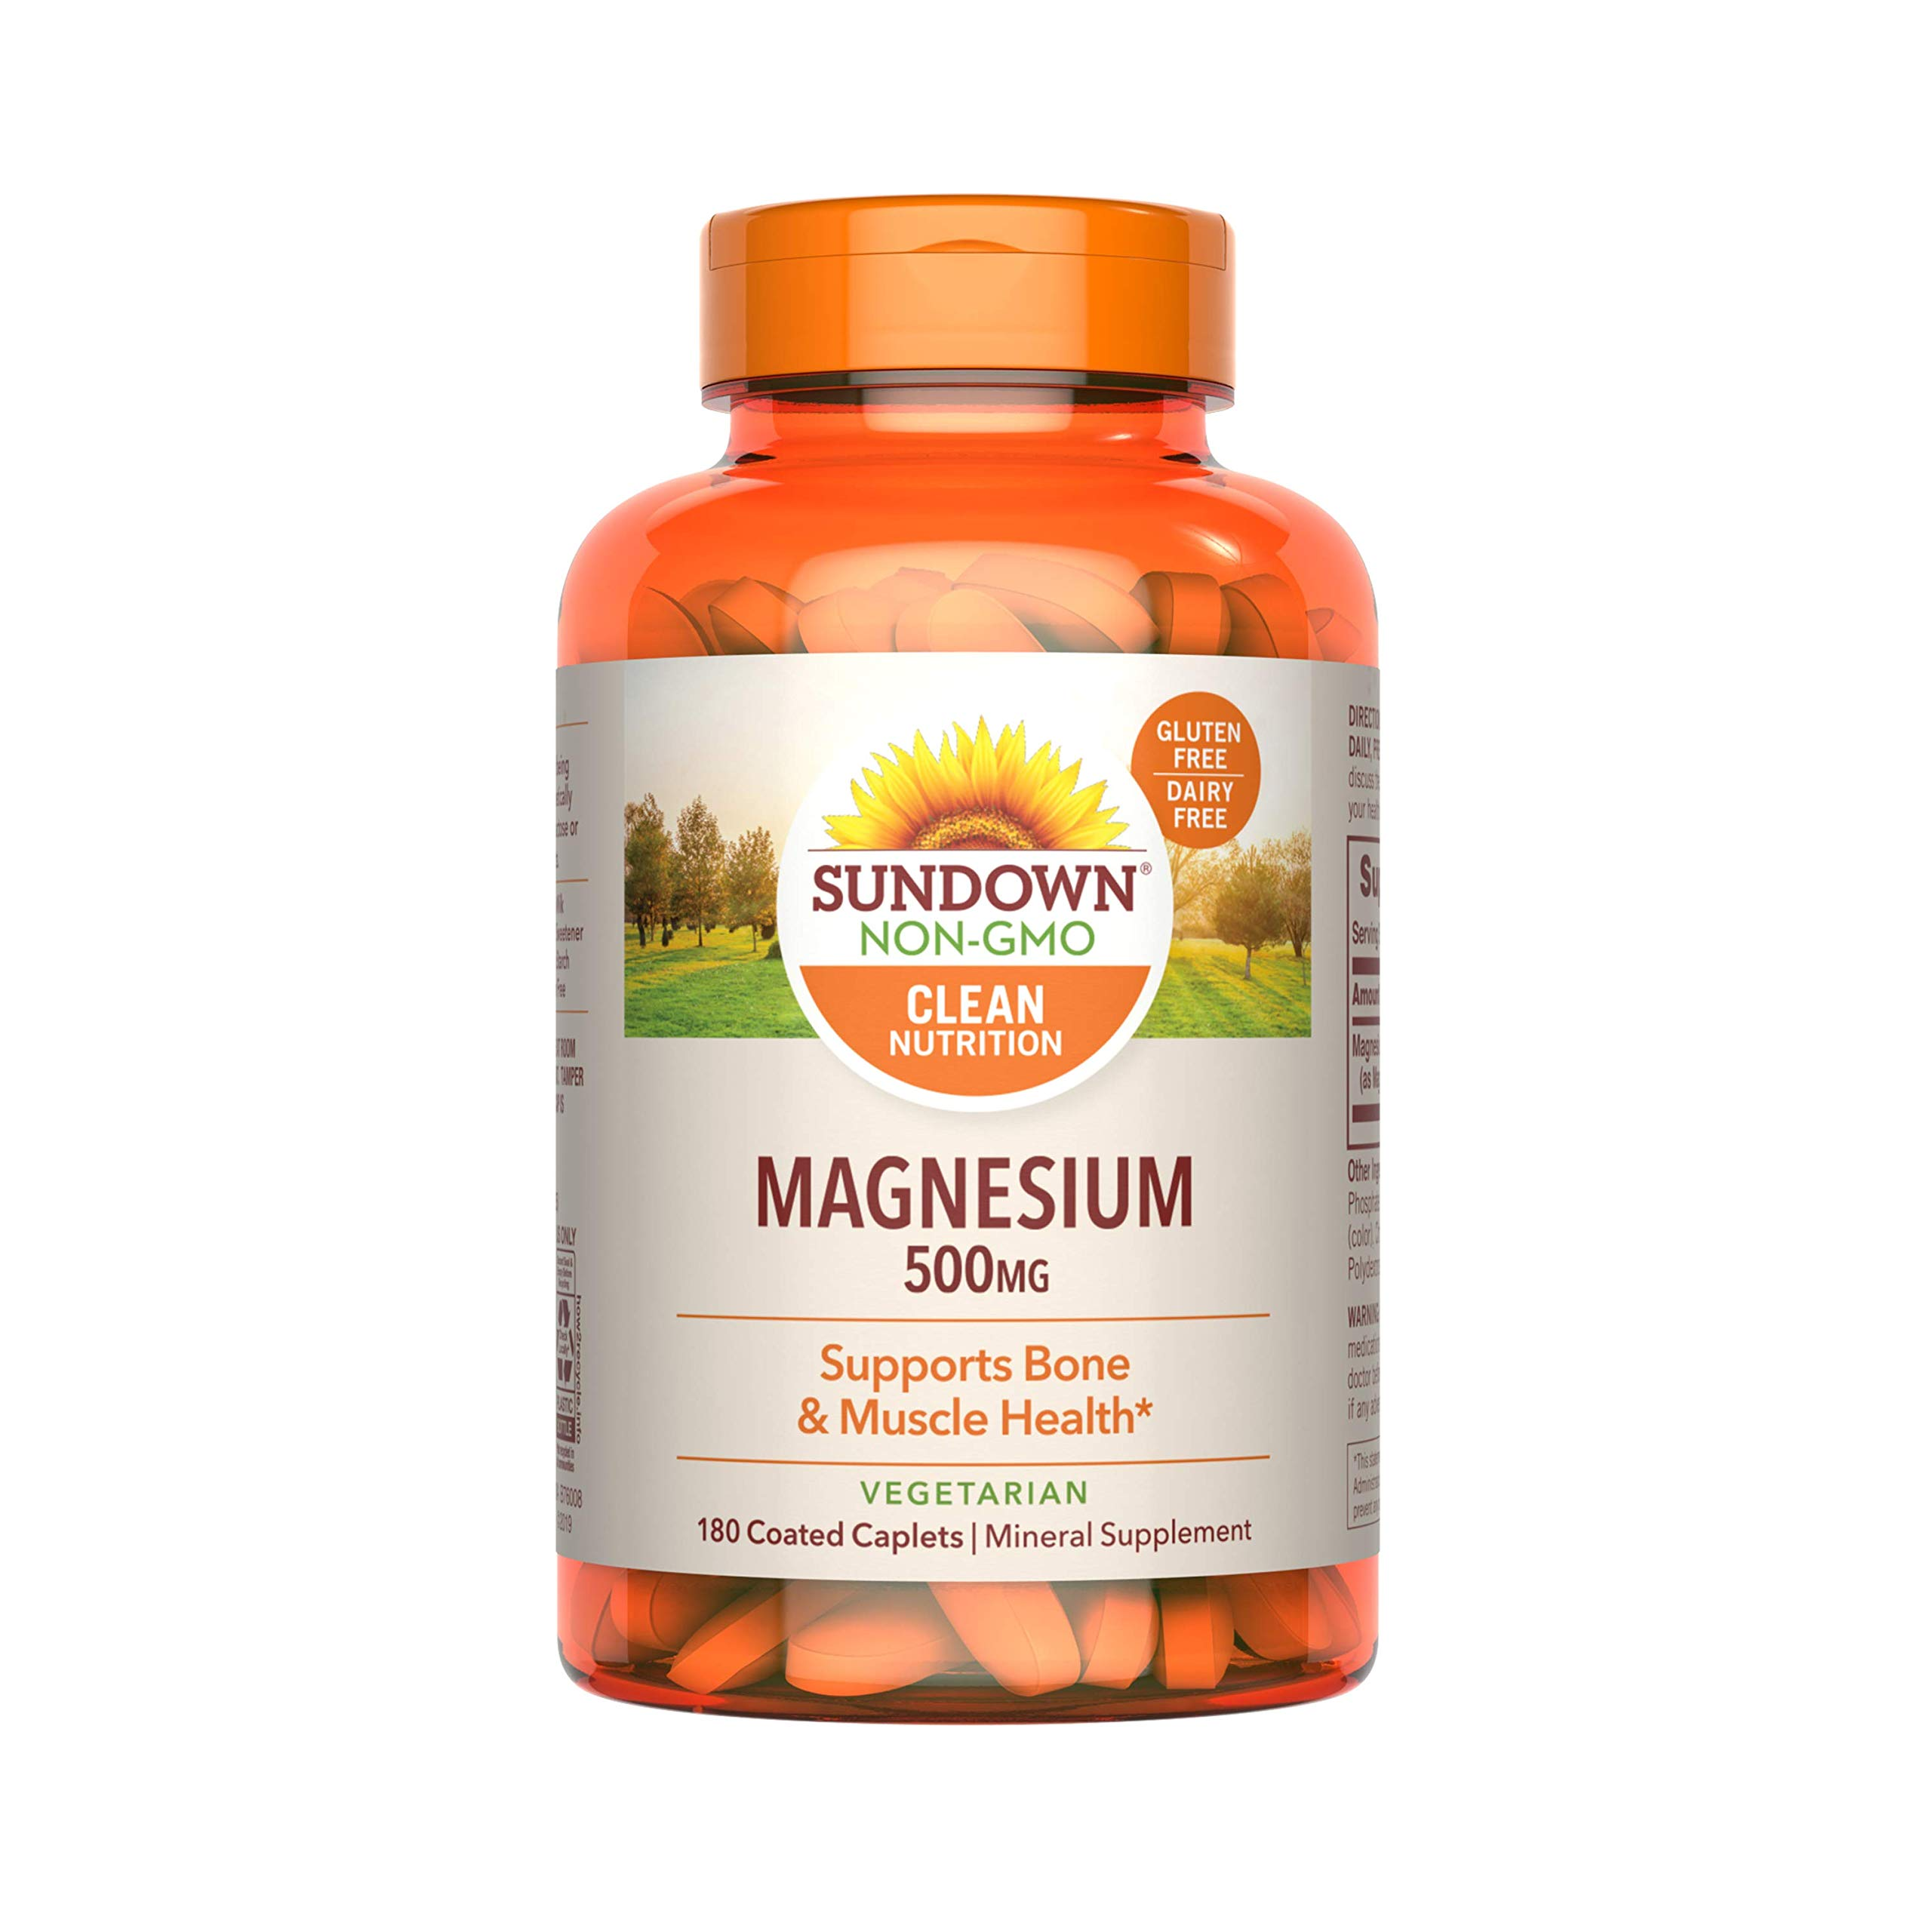 Sundown Magnesium Supplement, Non-GMOˆ, Gluten-Free, Dairy-Free, Vegetarian, 500mg Coated Caplets, 180 Count, 6 Month Supply